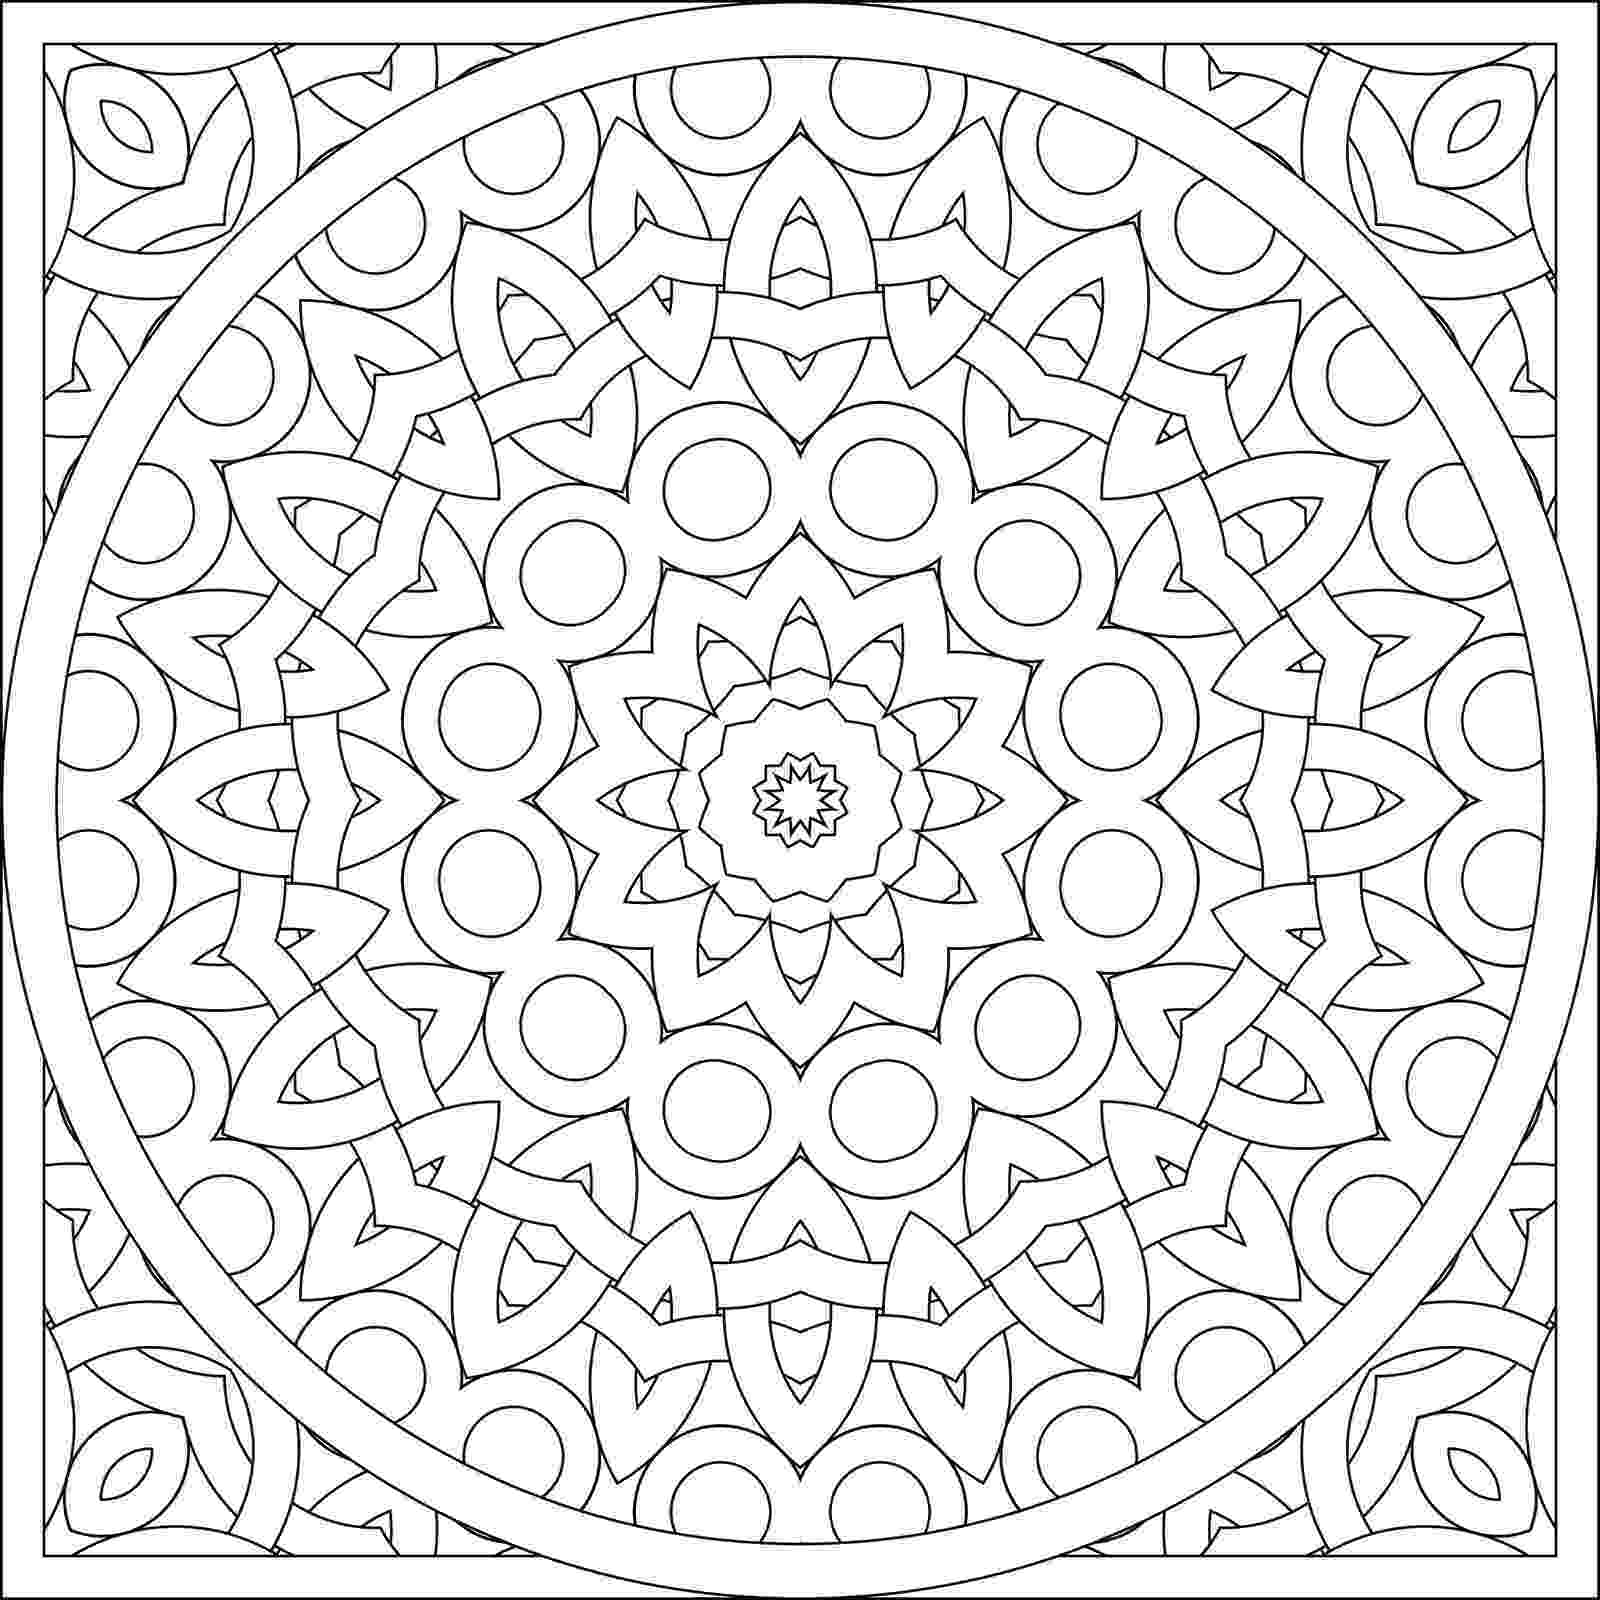 coloring patterns colouring designs thelinoprinter coloring patterns 1 1